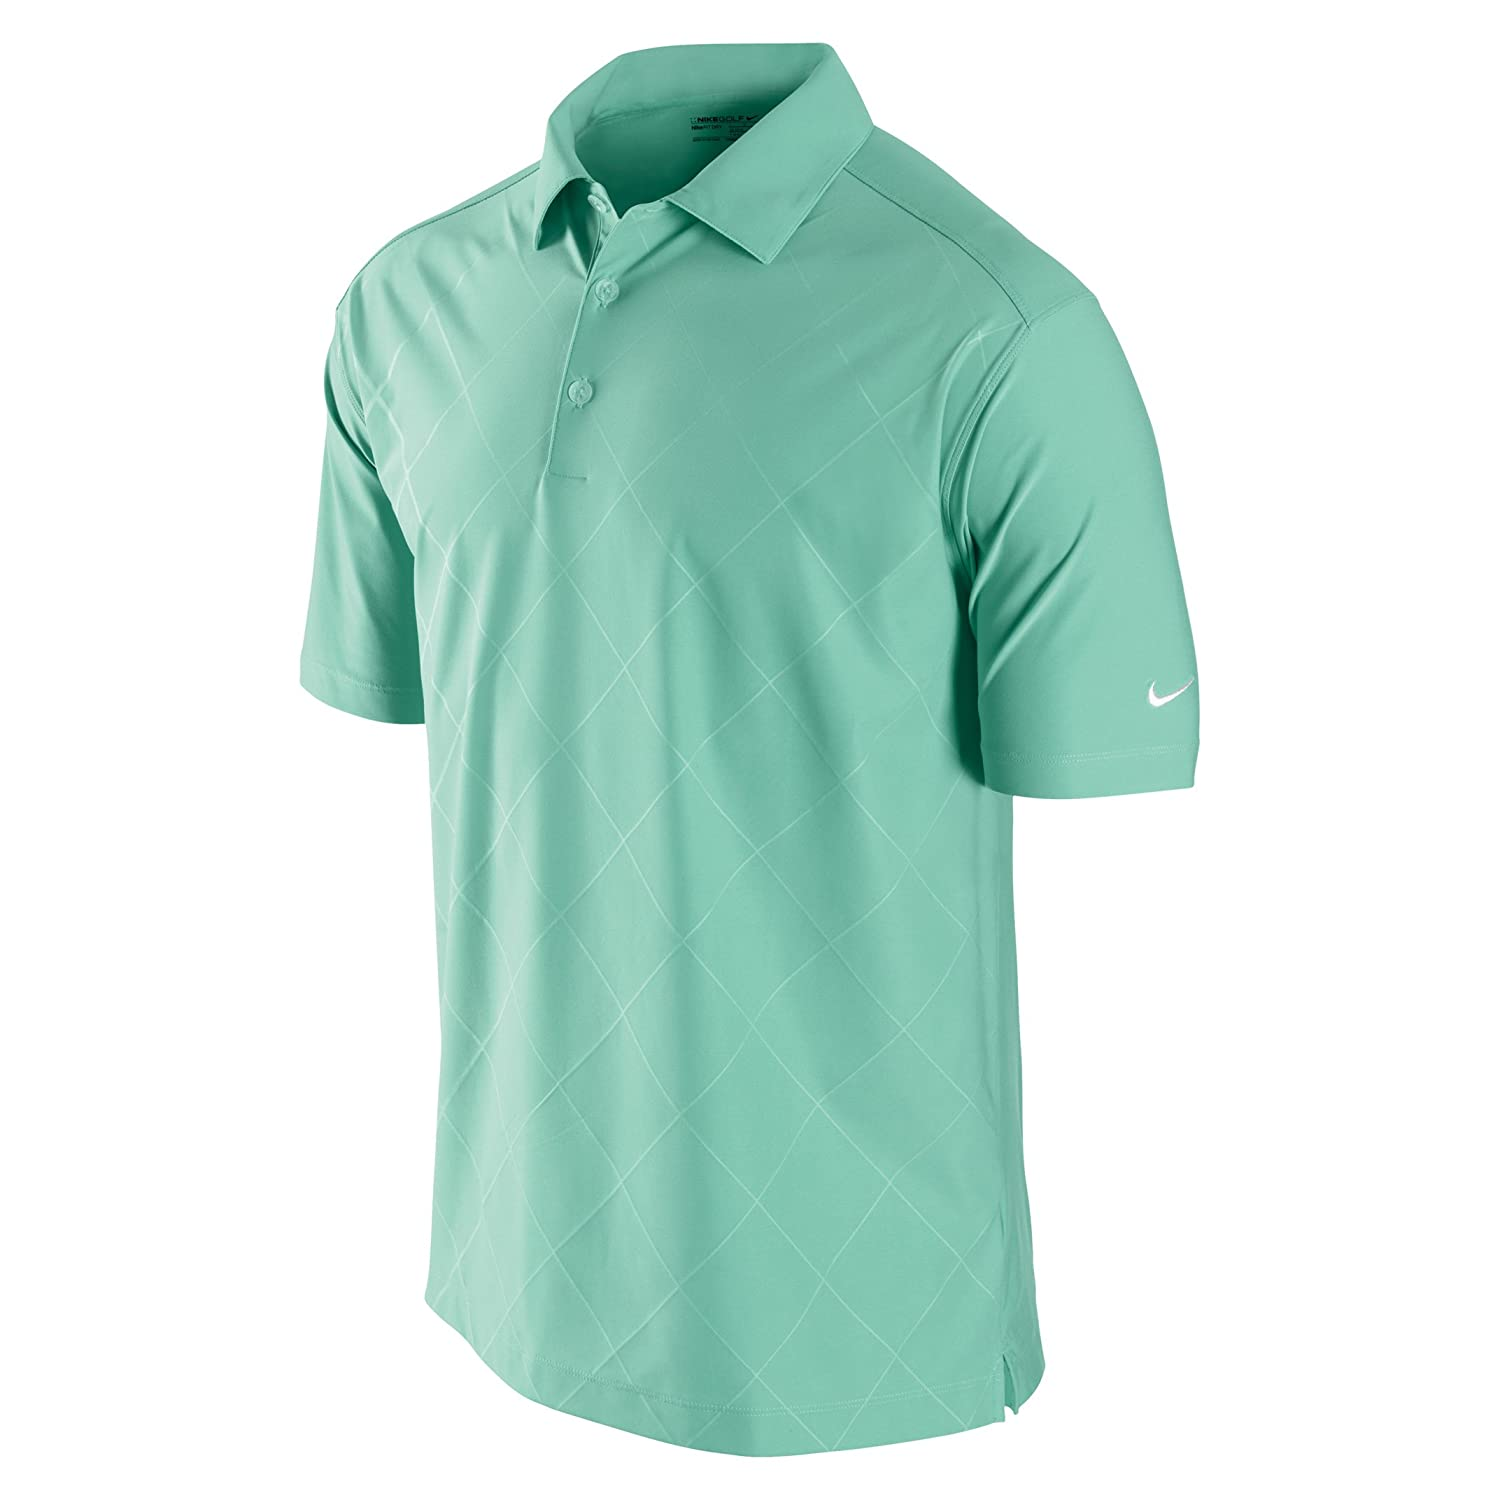 8bf49939 Amazon.com : Nike Men's Debossed Argyle Golf Polo Shirt, Cool Mint/White,  Small : Golf Apparel : Clothing